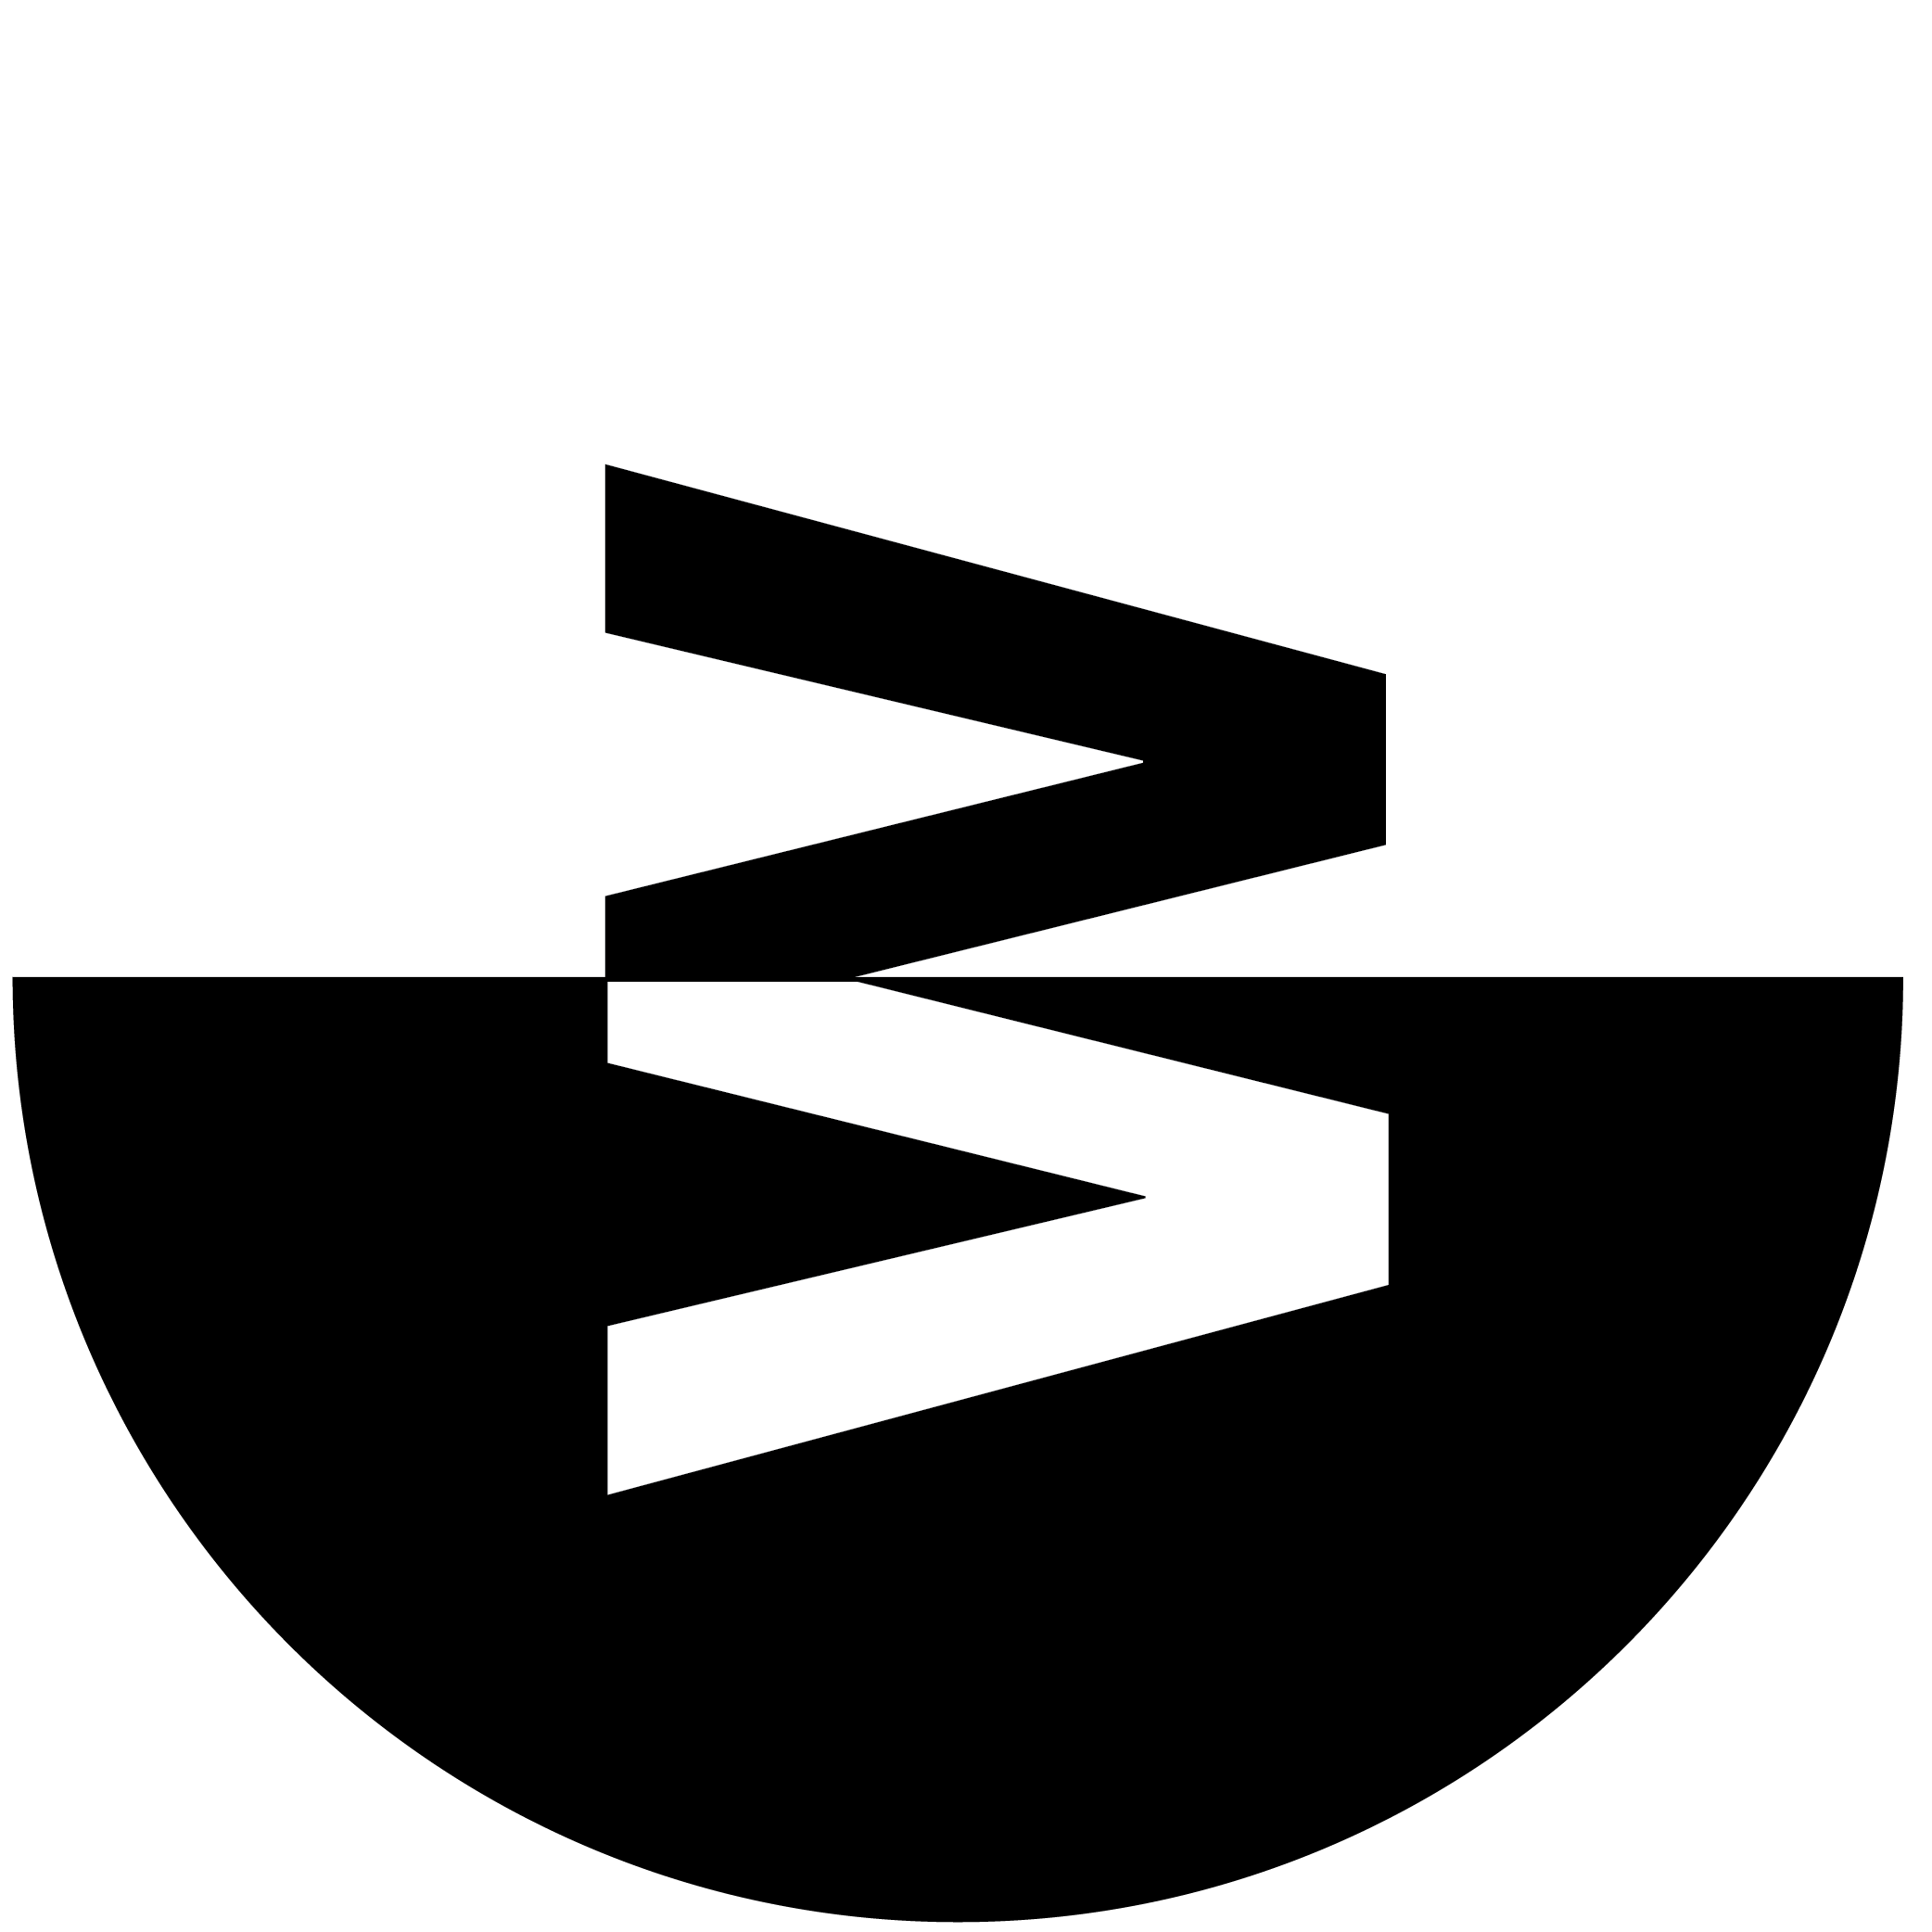 Weiv_Logo_April2018-03.png